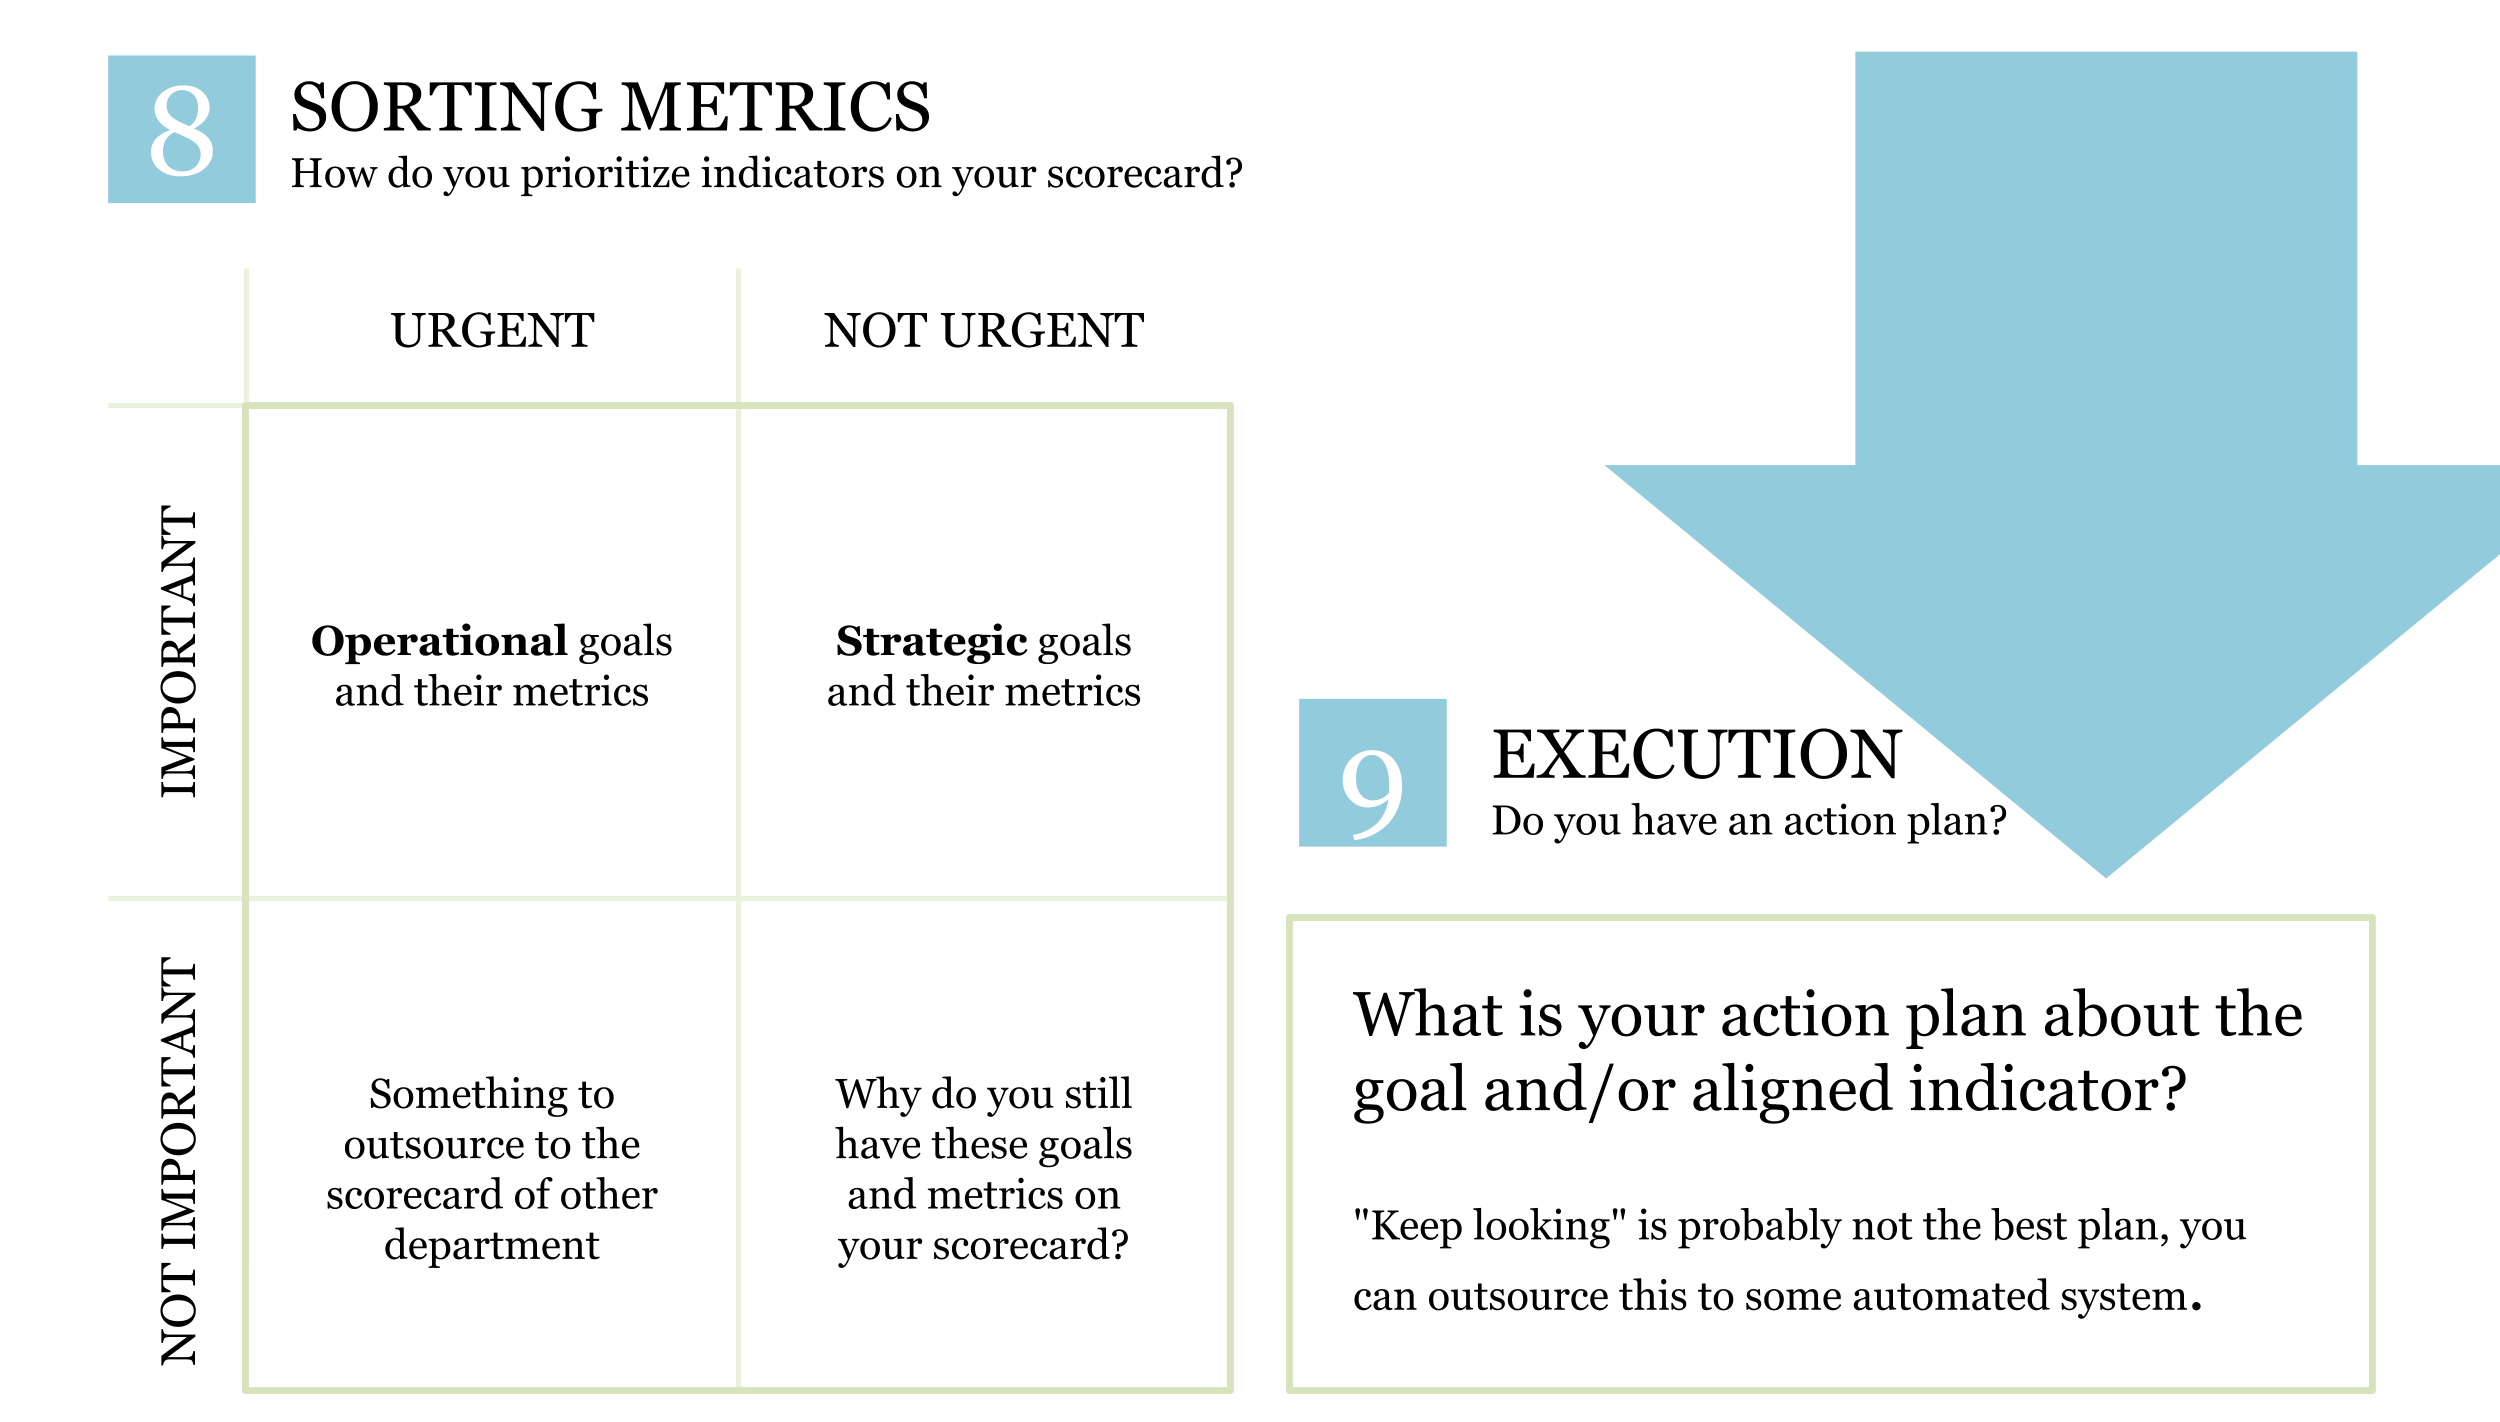 Sorting Metrics and Action Plan Execution - KPI System